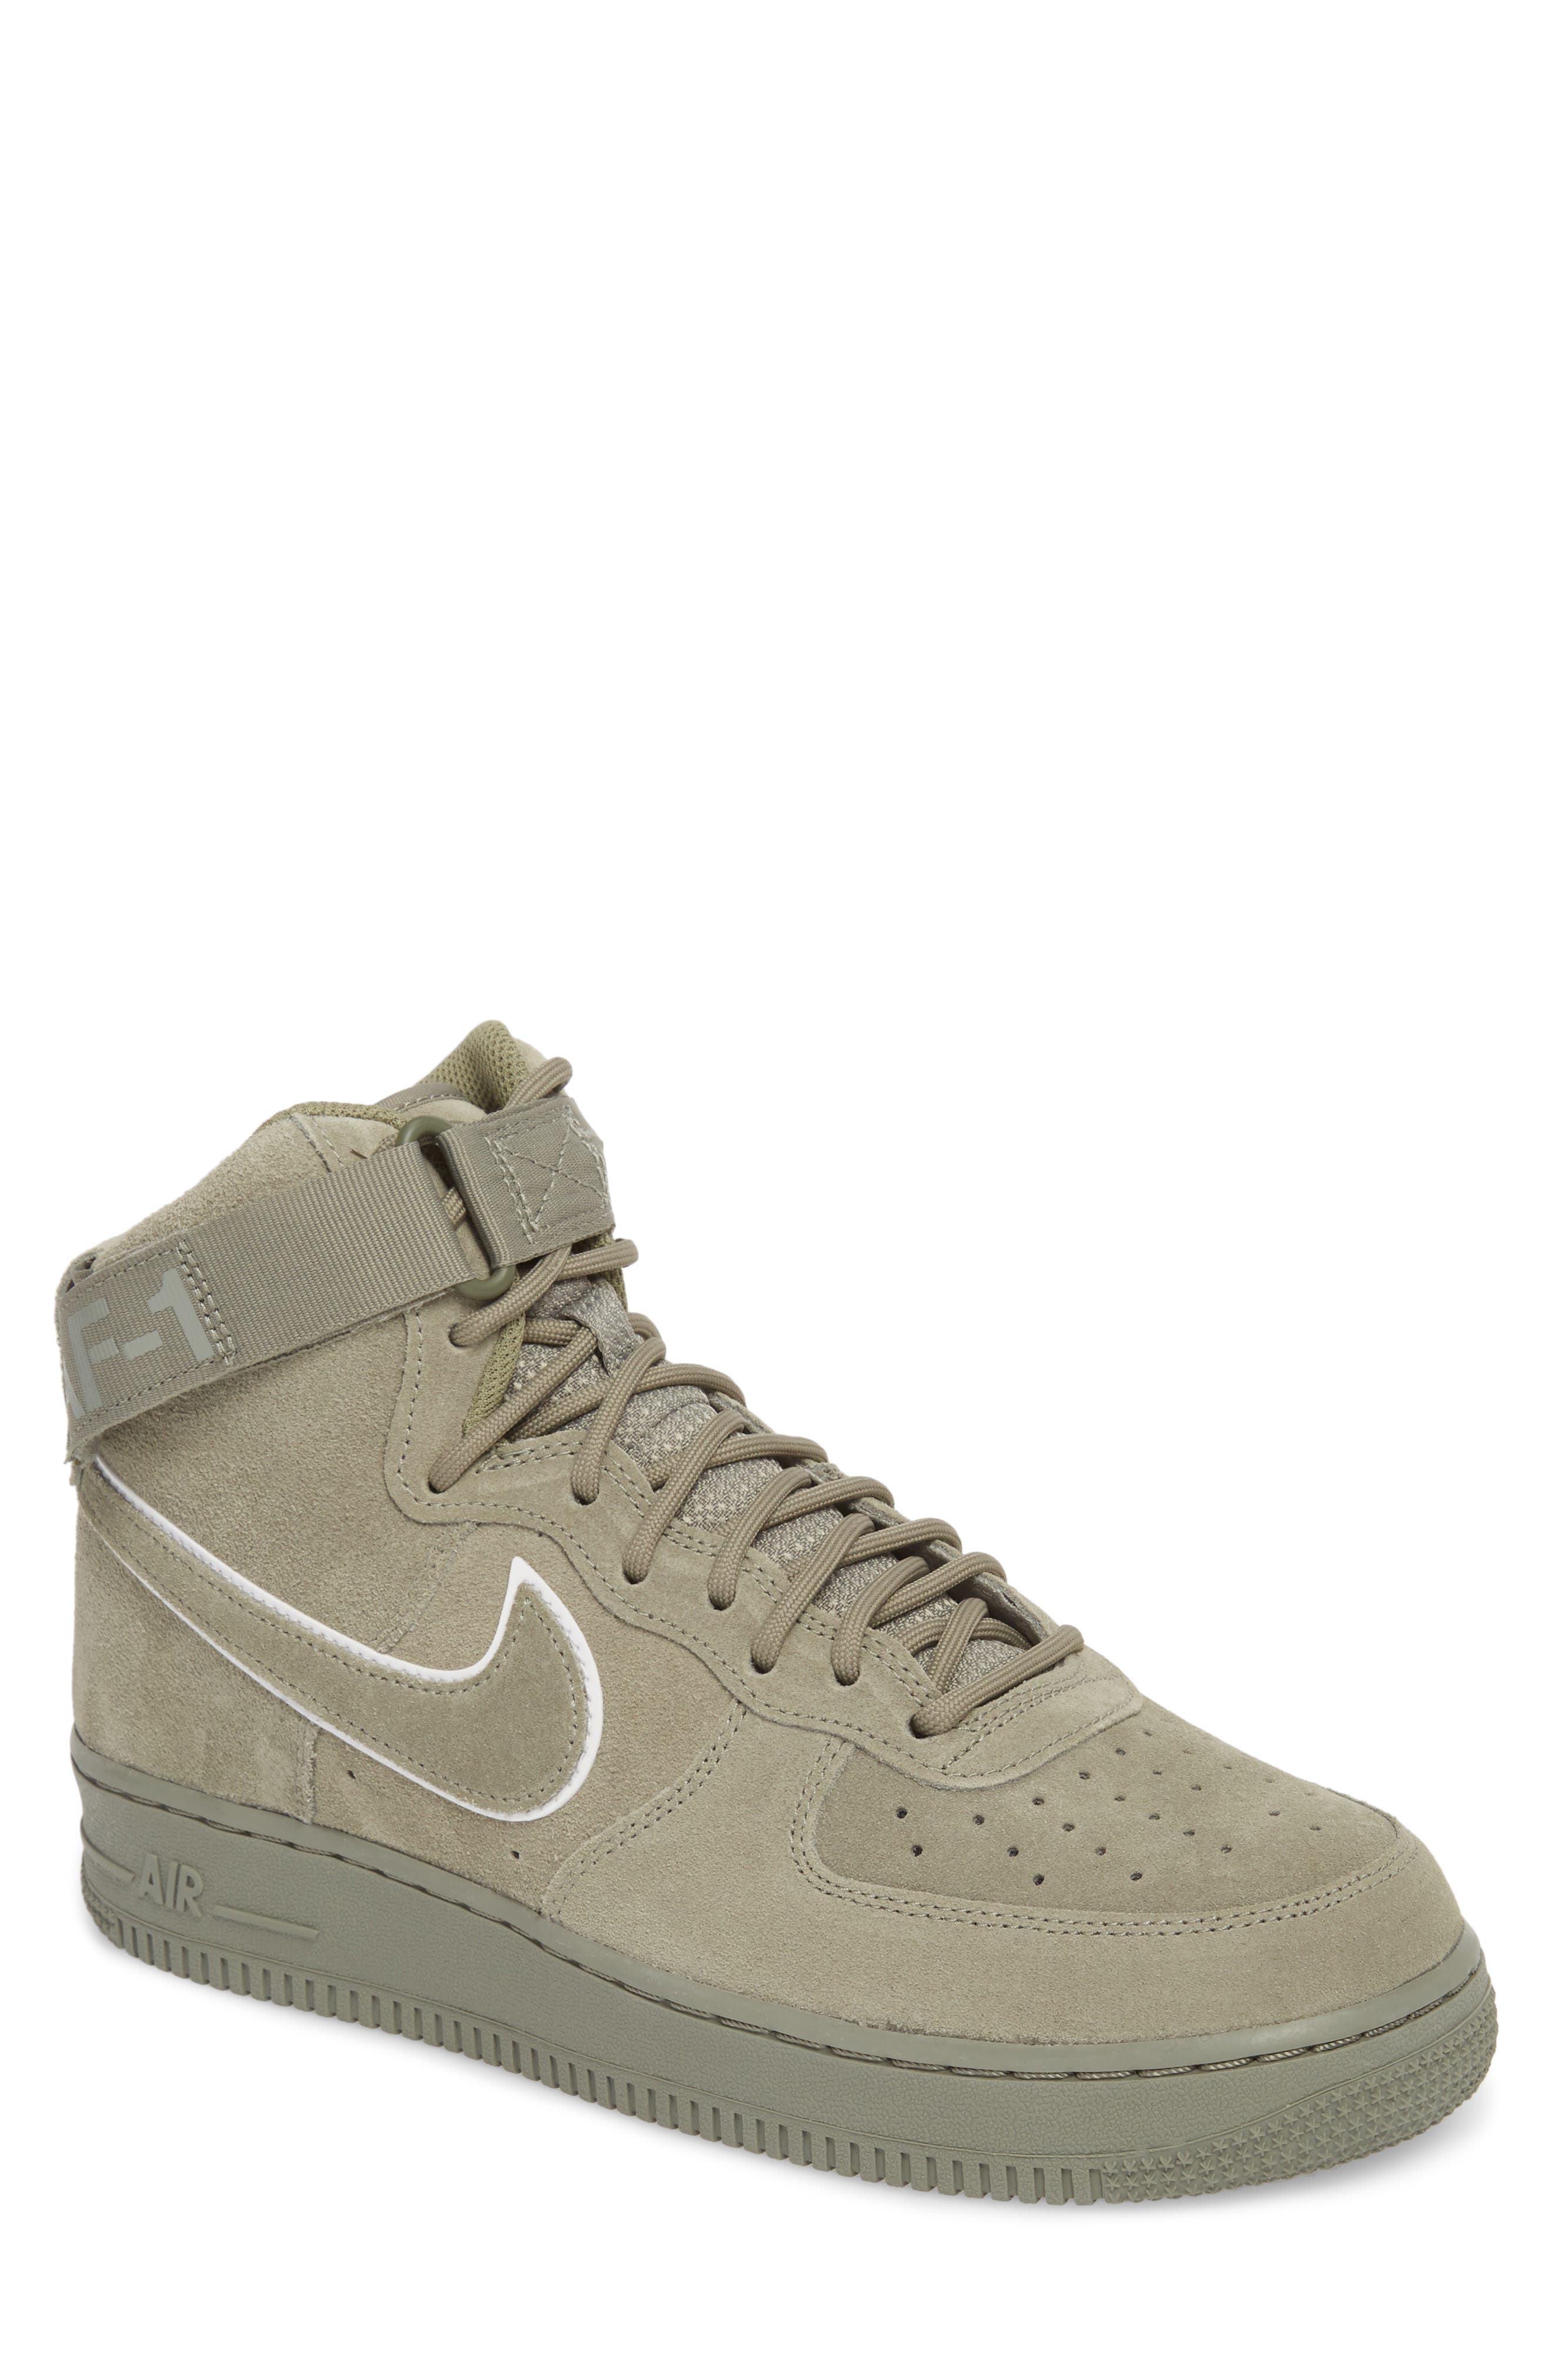 Nike Air Force 1 High '07 LV8 Suede Sneaker (Men)